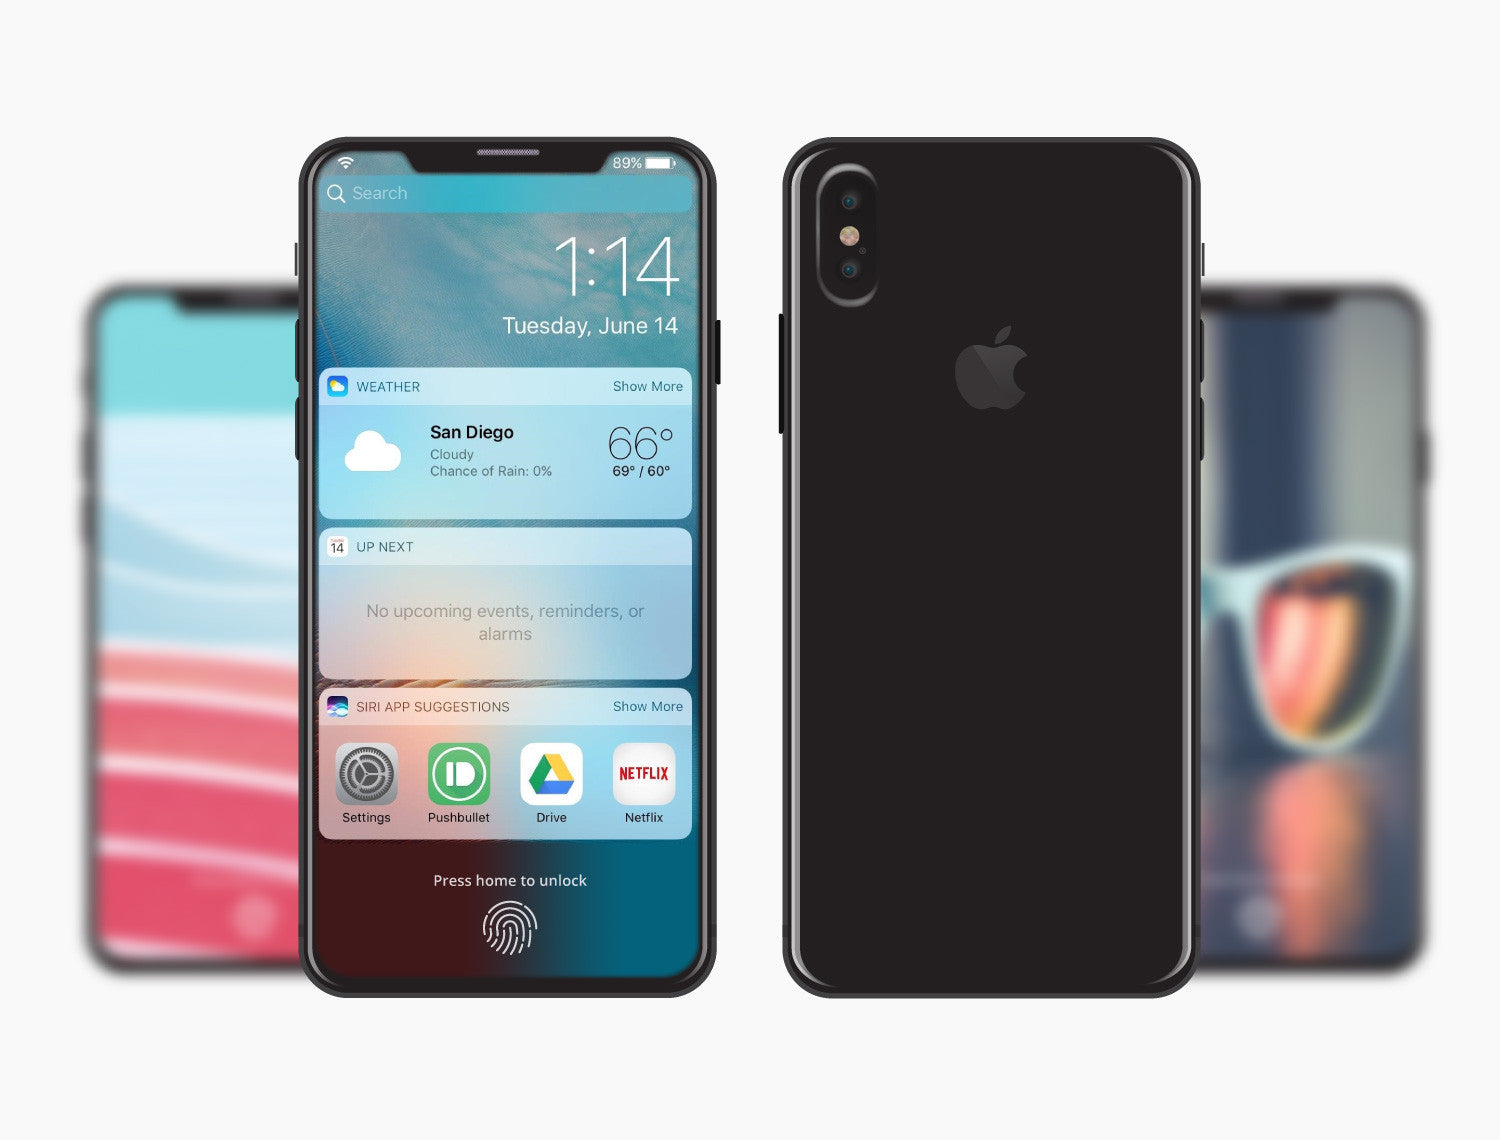 iPhone 8 Rumors & Guide